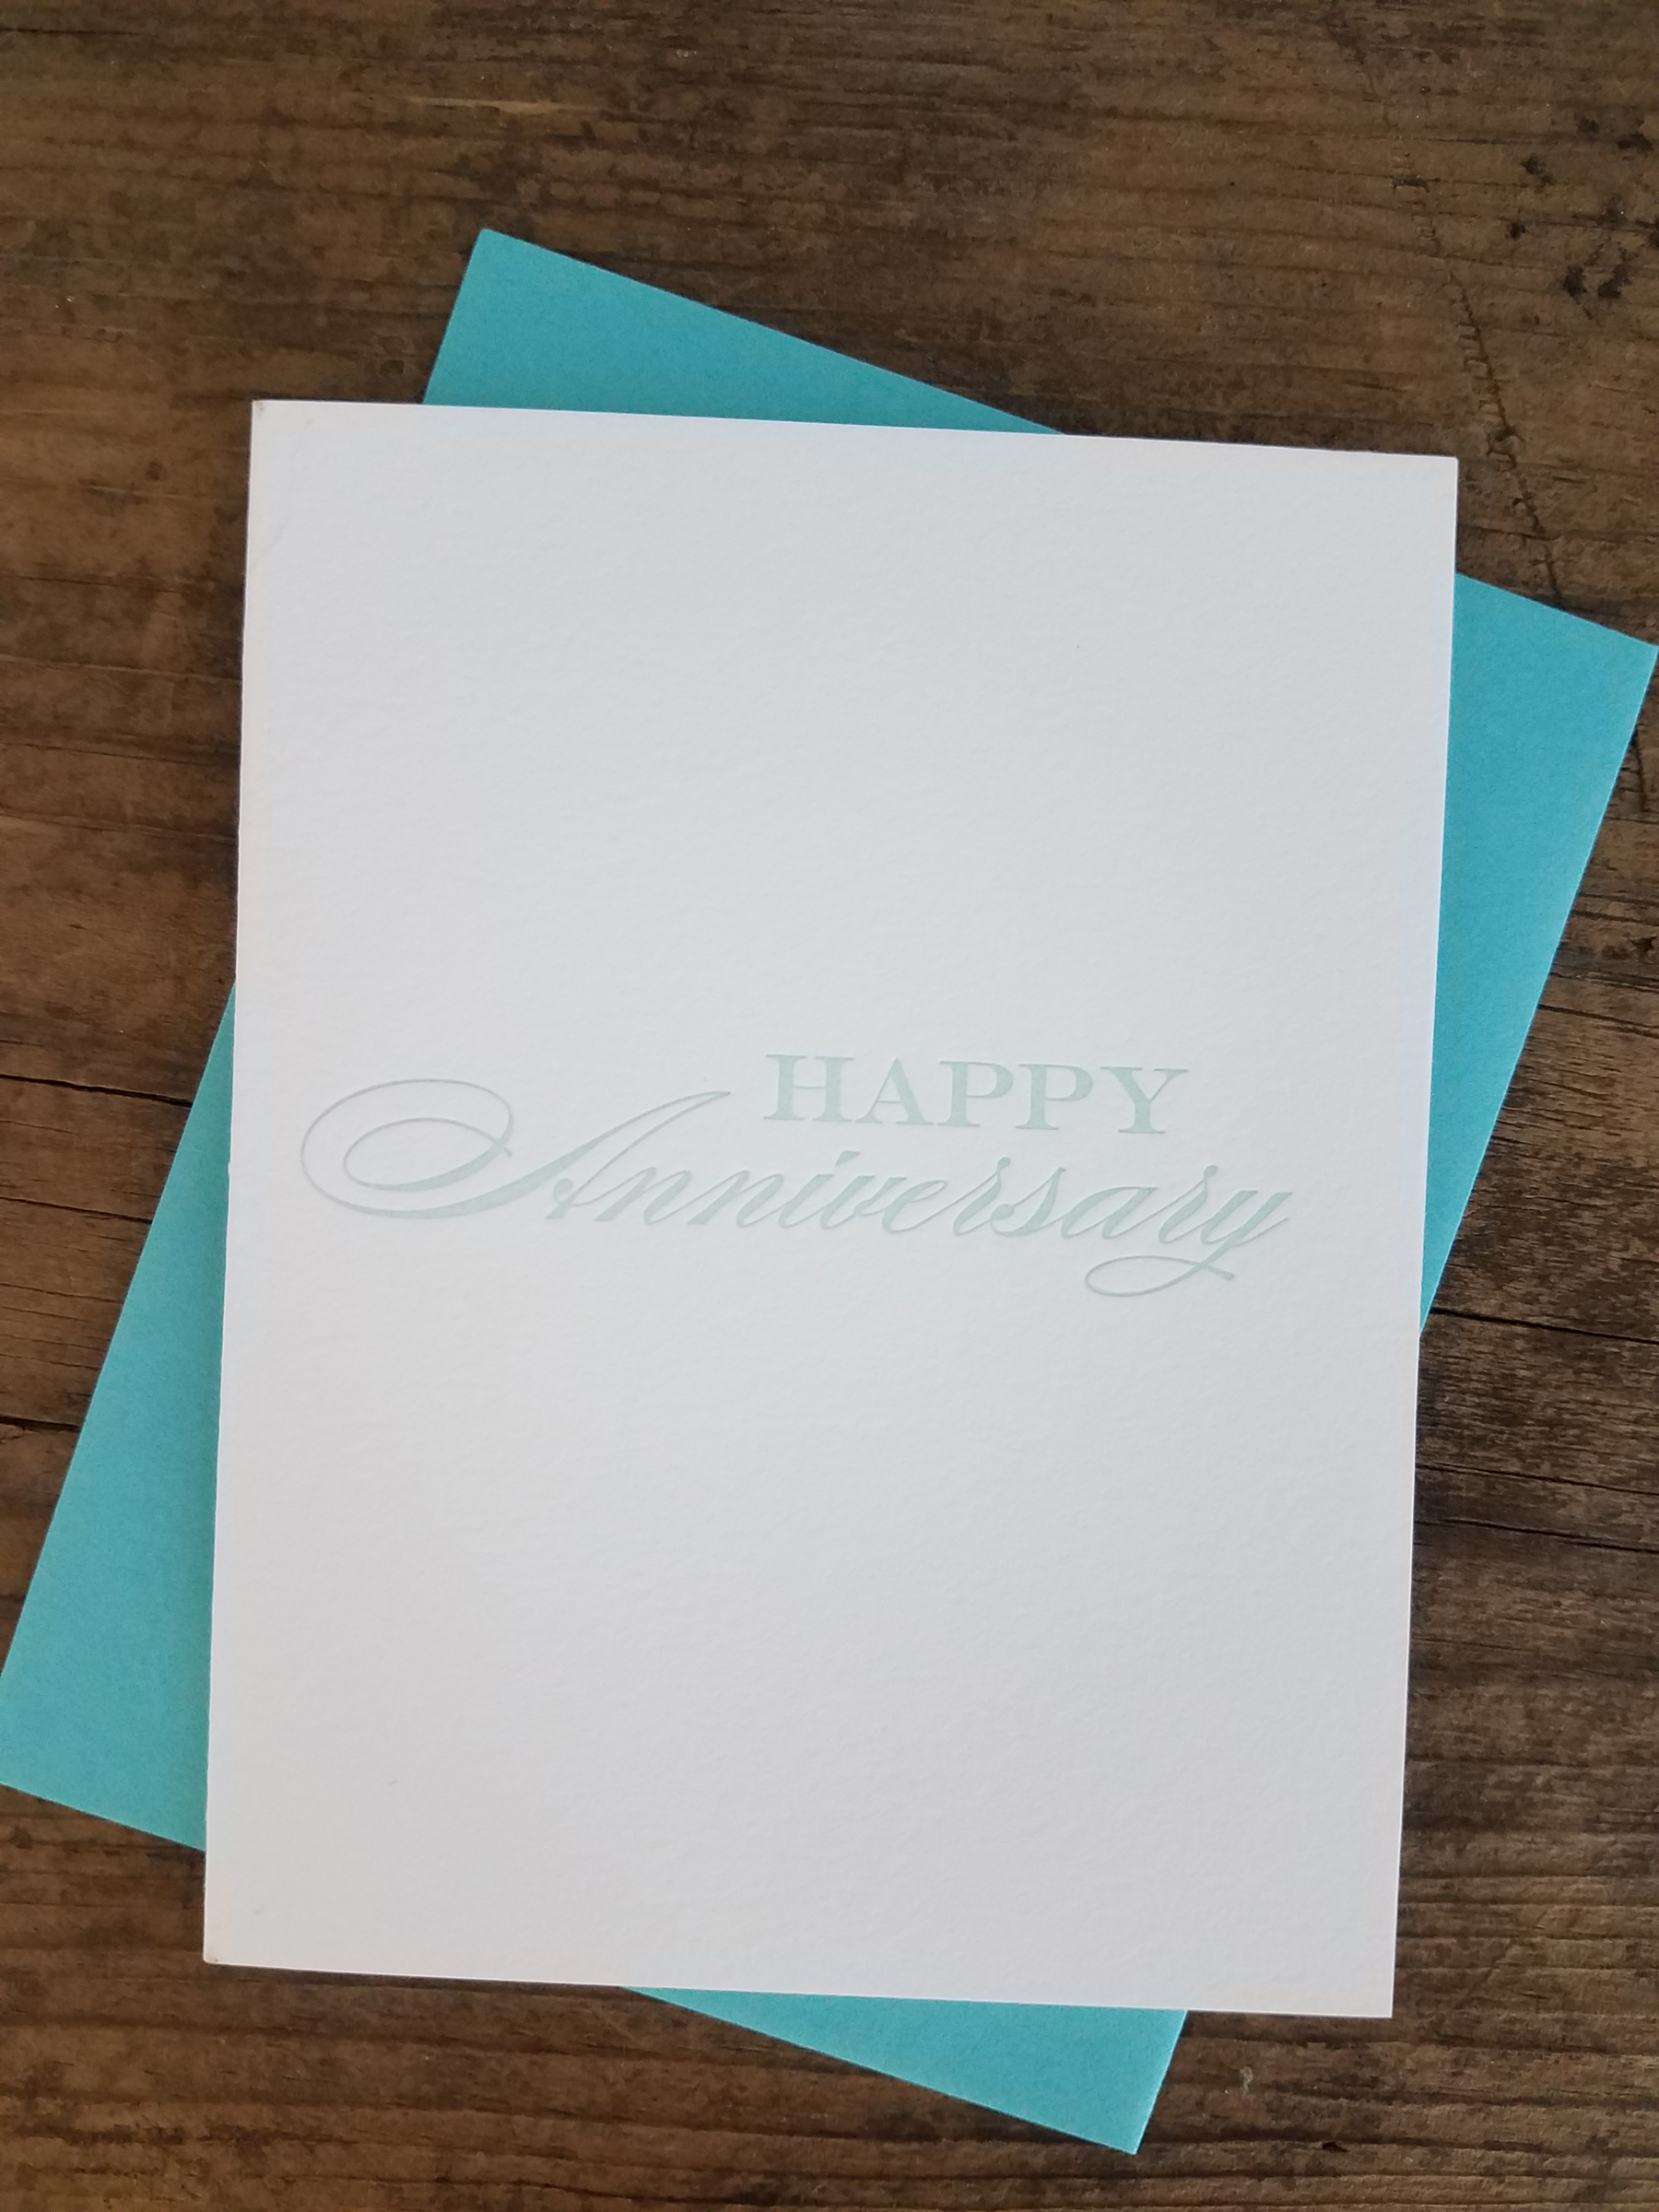 Happy Anniversary Letterpress Greeting Card Iron Leaf Press